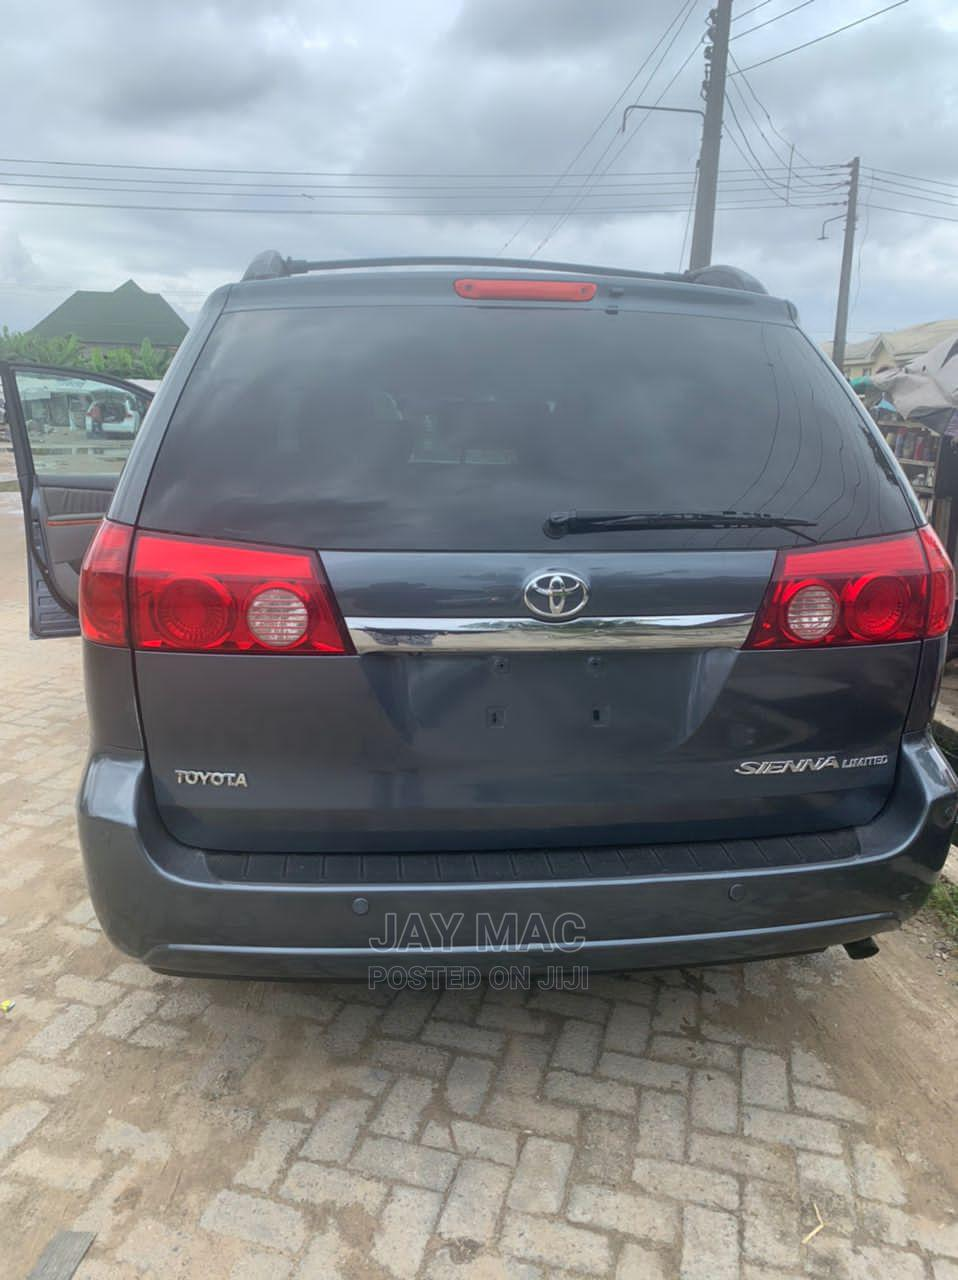 Archive: Toyota Sienna 2007 XLE Limited Blue